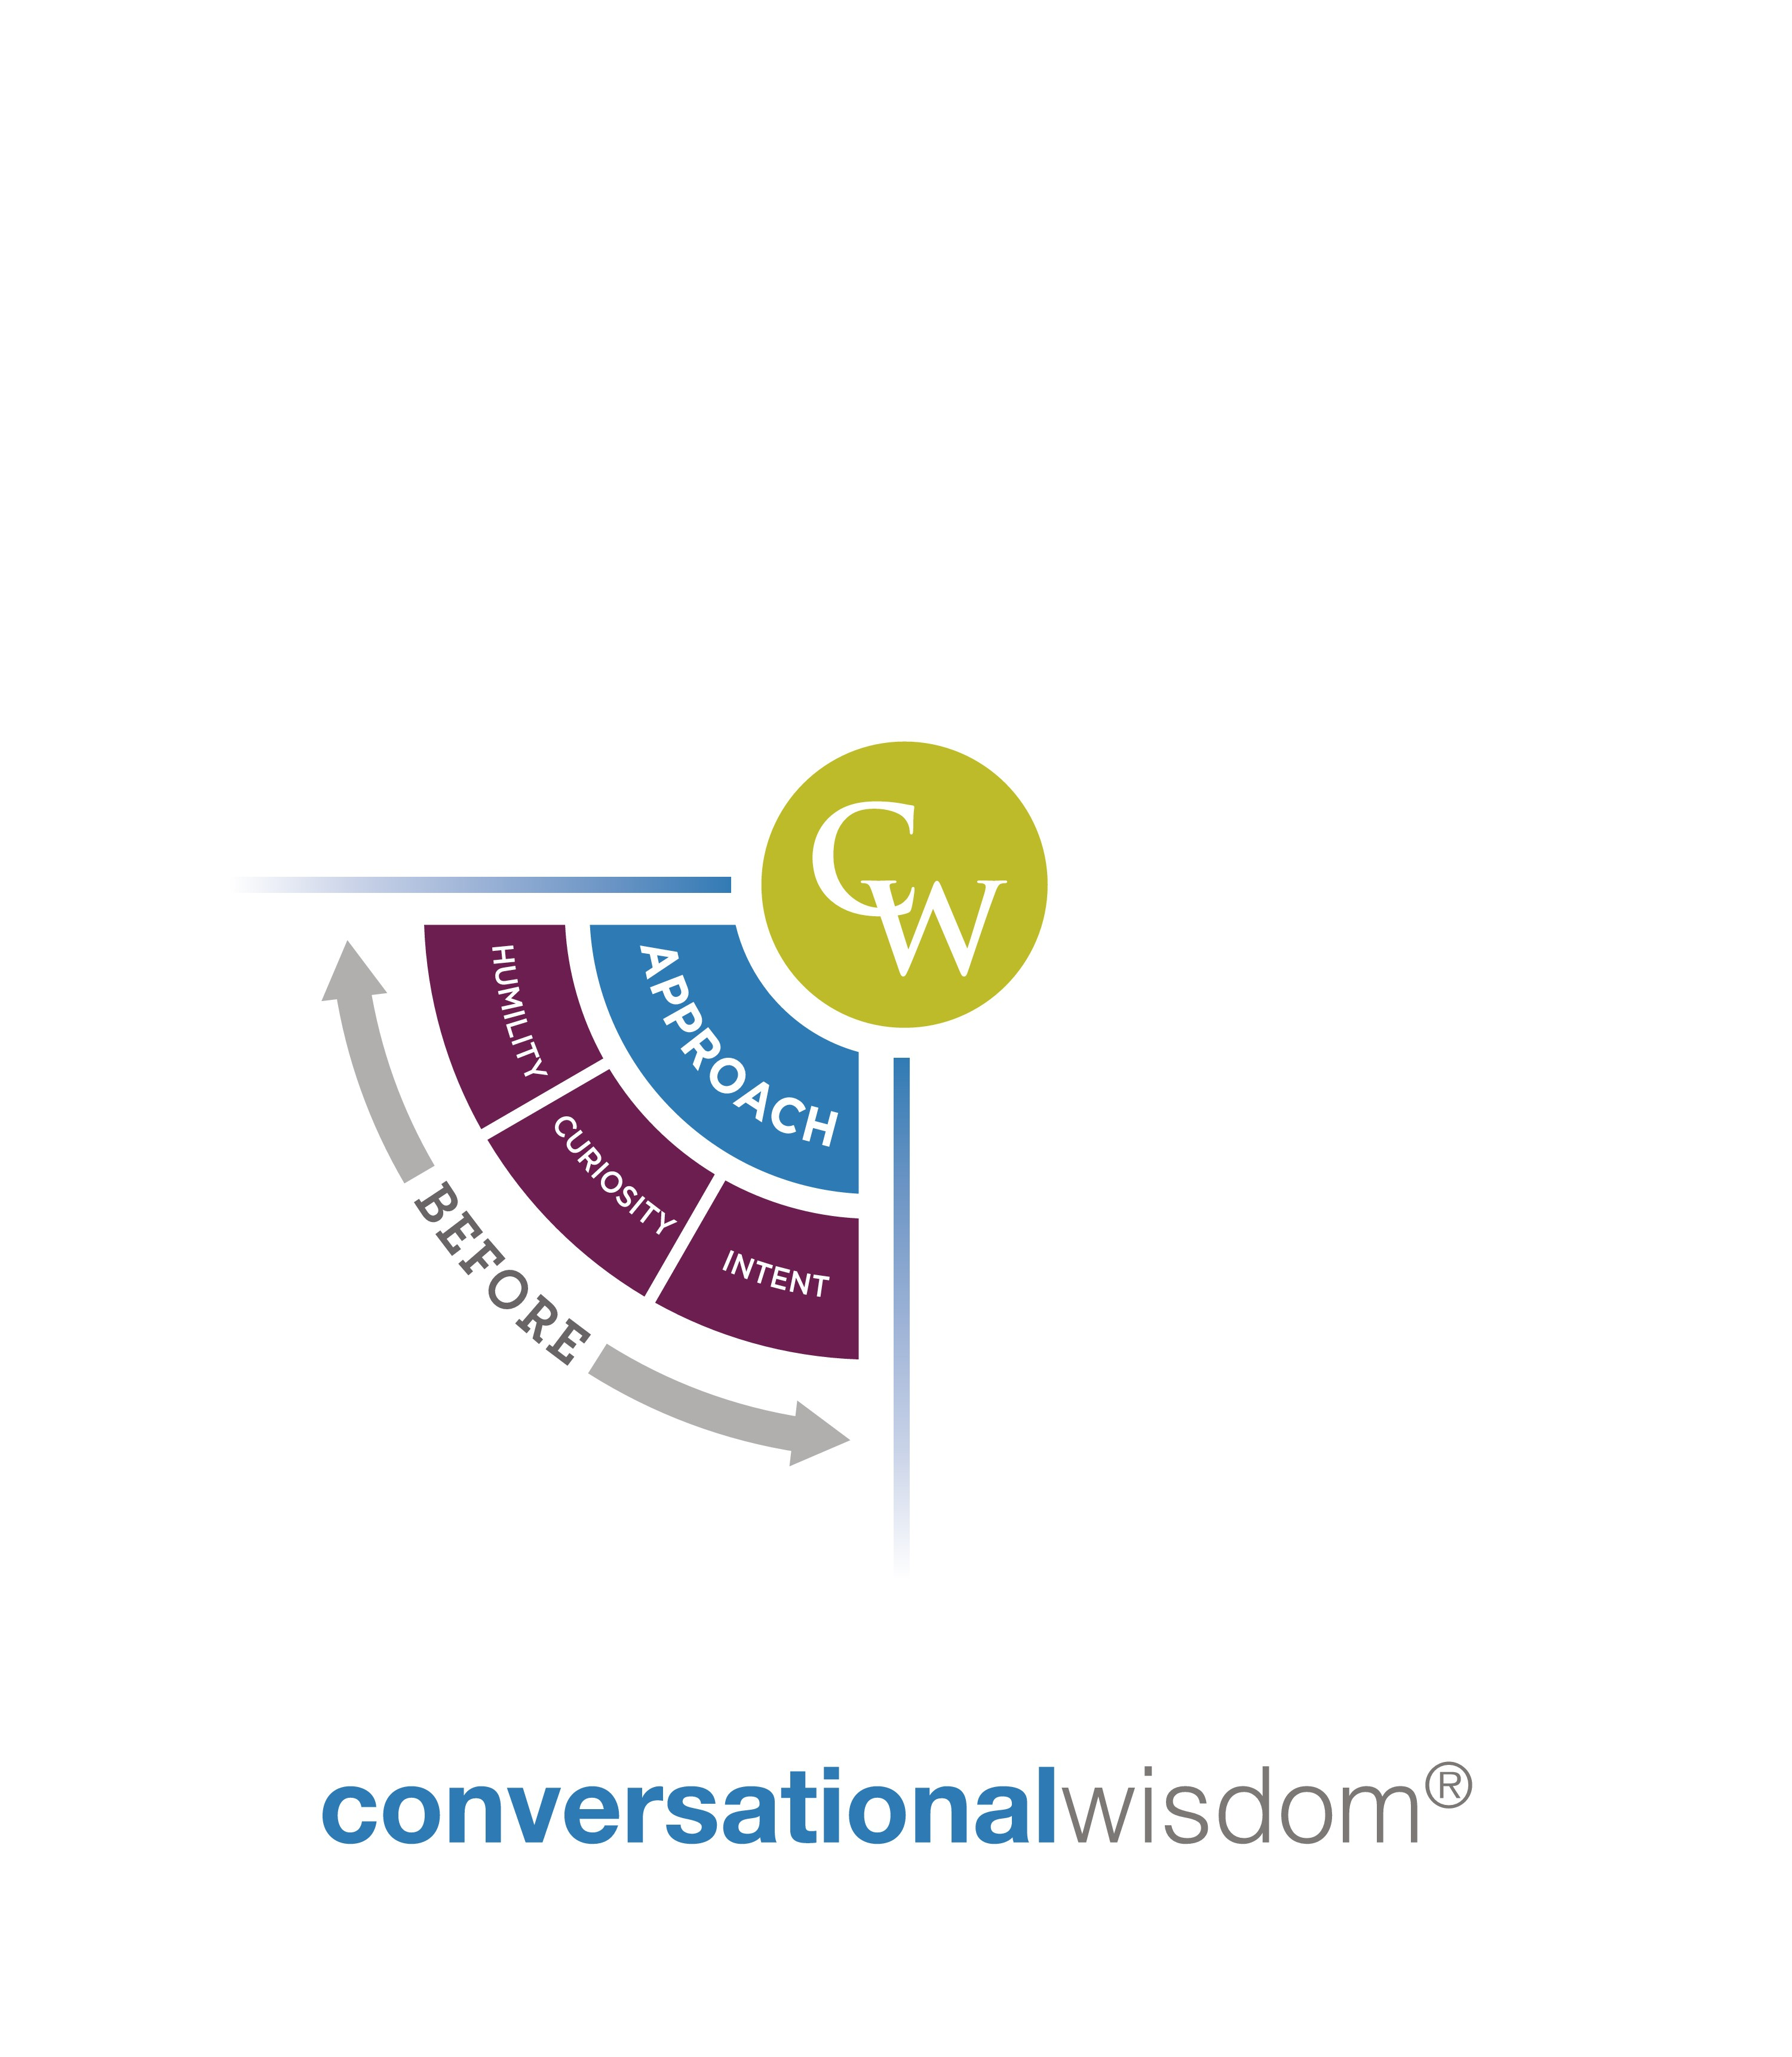 Create a strong visual model of our Conversational Wisdom product